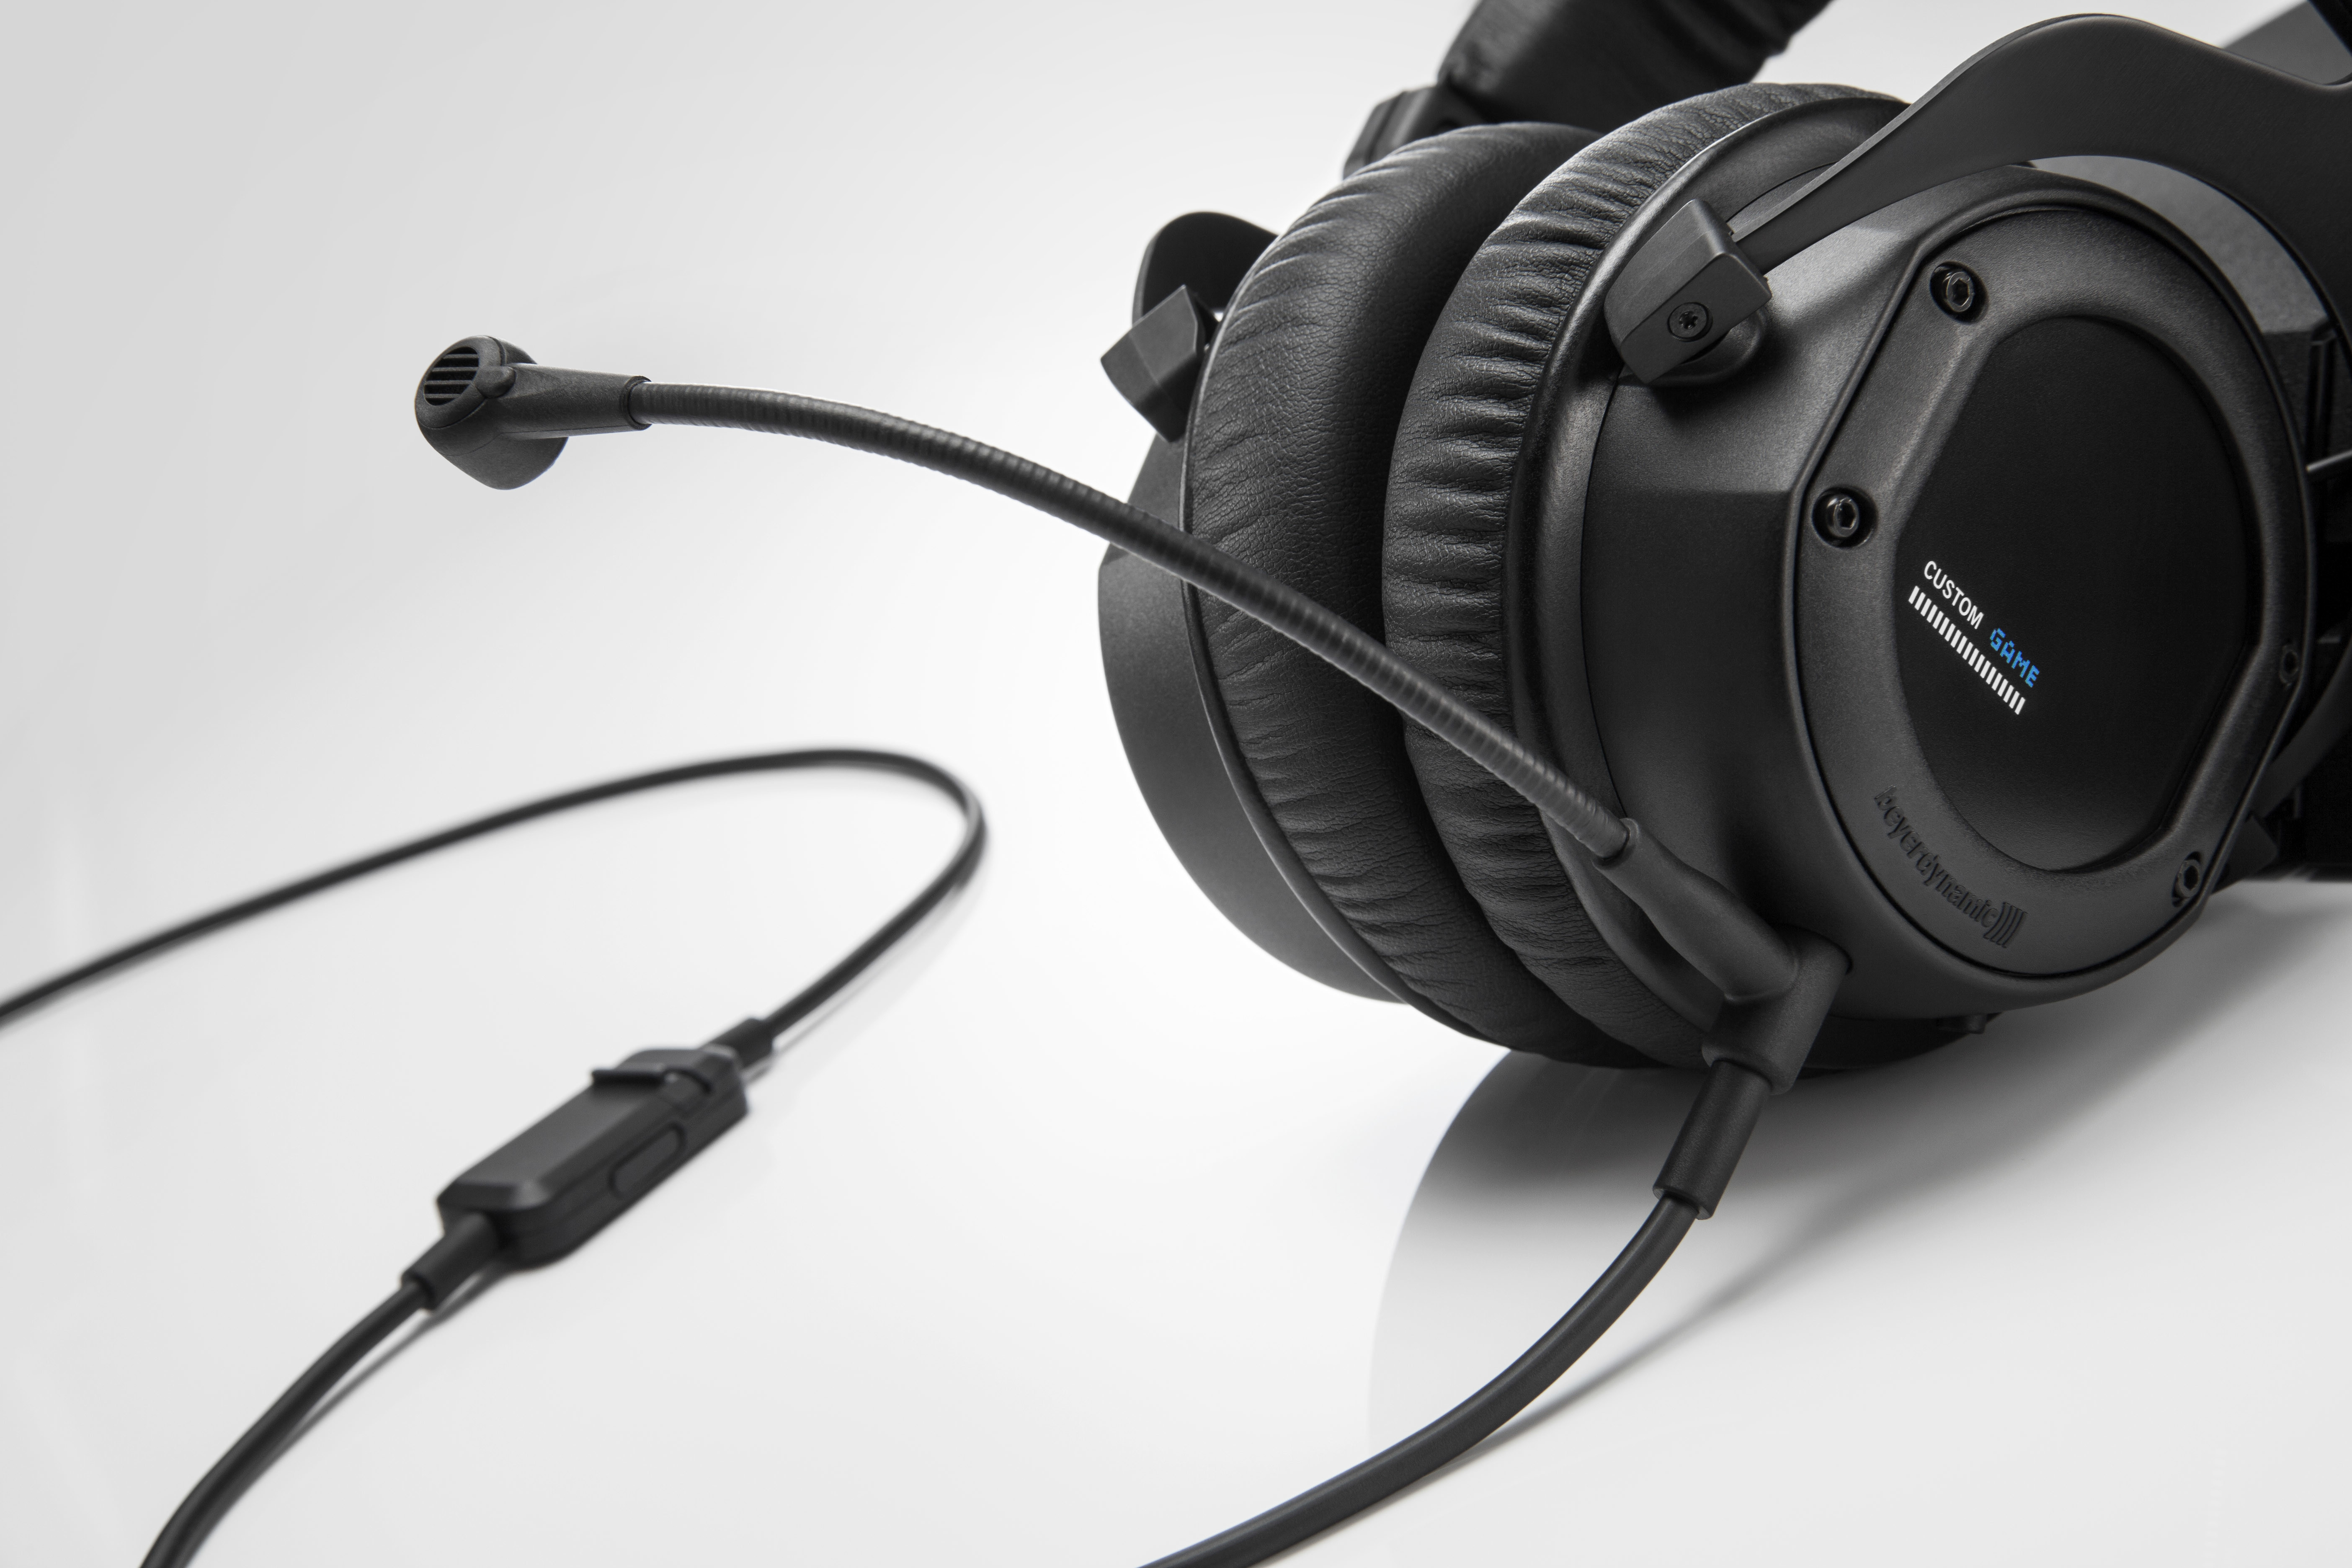 Beyerdynamic Announces The Custom Game Headset To Be Presented At Headphone Dtx 350m Take Typical Sound Slider For Example It Comes With Non Slip Sliders On Housing Which Adjust Bass Response Of As Desired